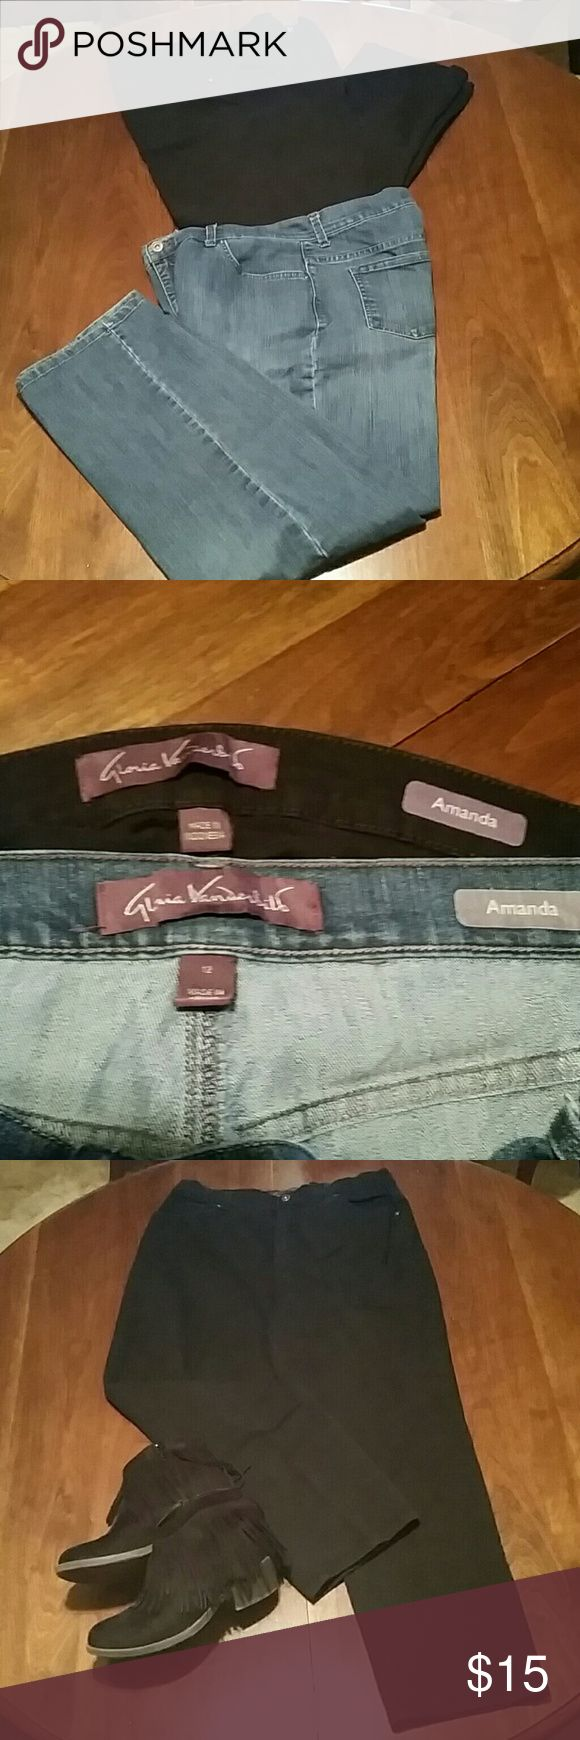 Amanda Jeans Each pair of jeans has a little spandex in them for a little stretch, which makes them just that much more comfortable! Gloria Vanderbilt Jeans Straight Leg